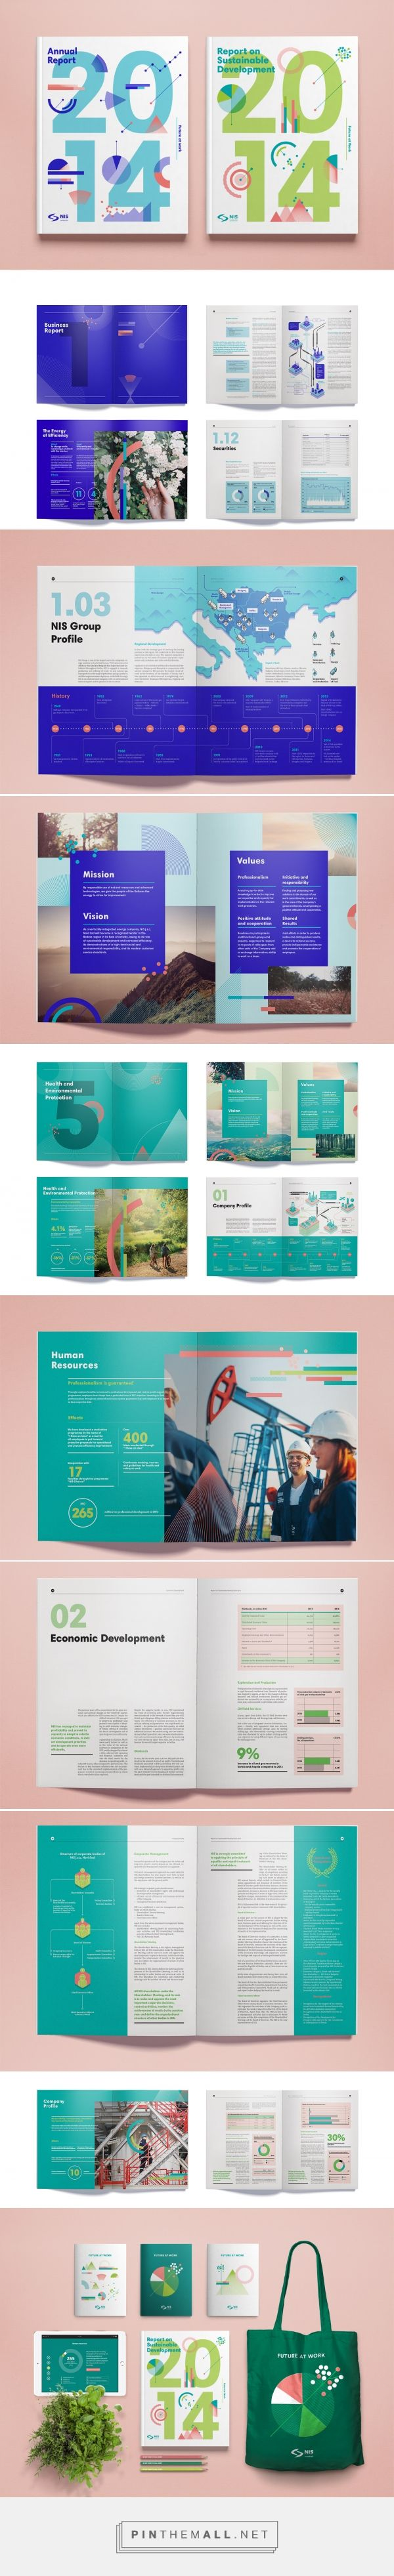 NIS Annual Report 2014 by Metaklinika design studio